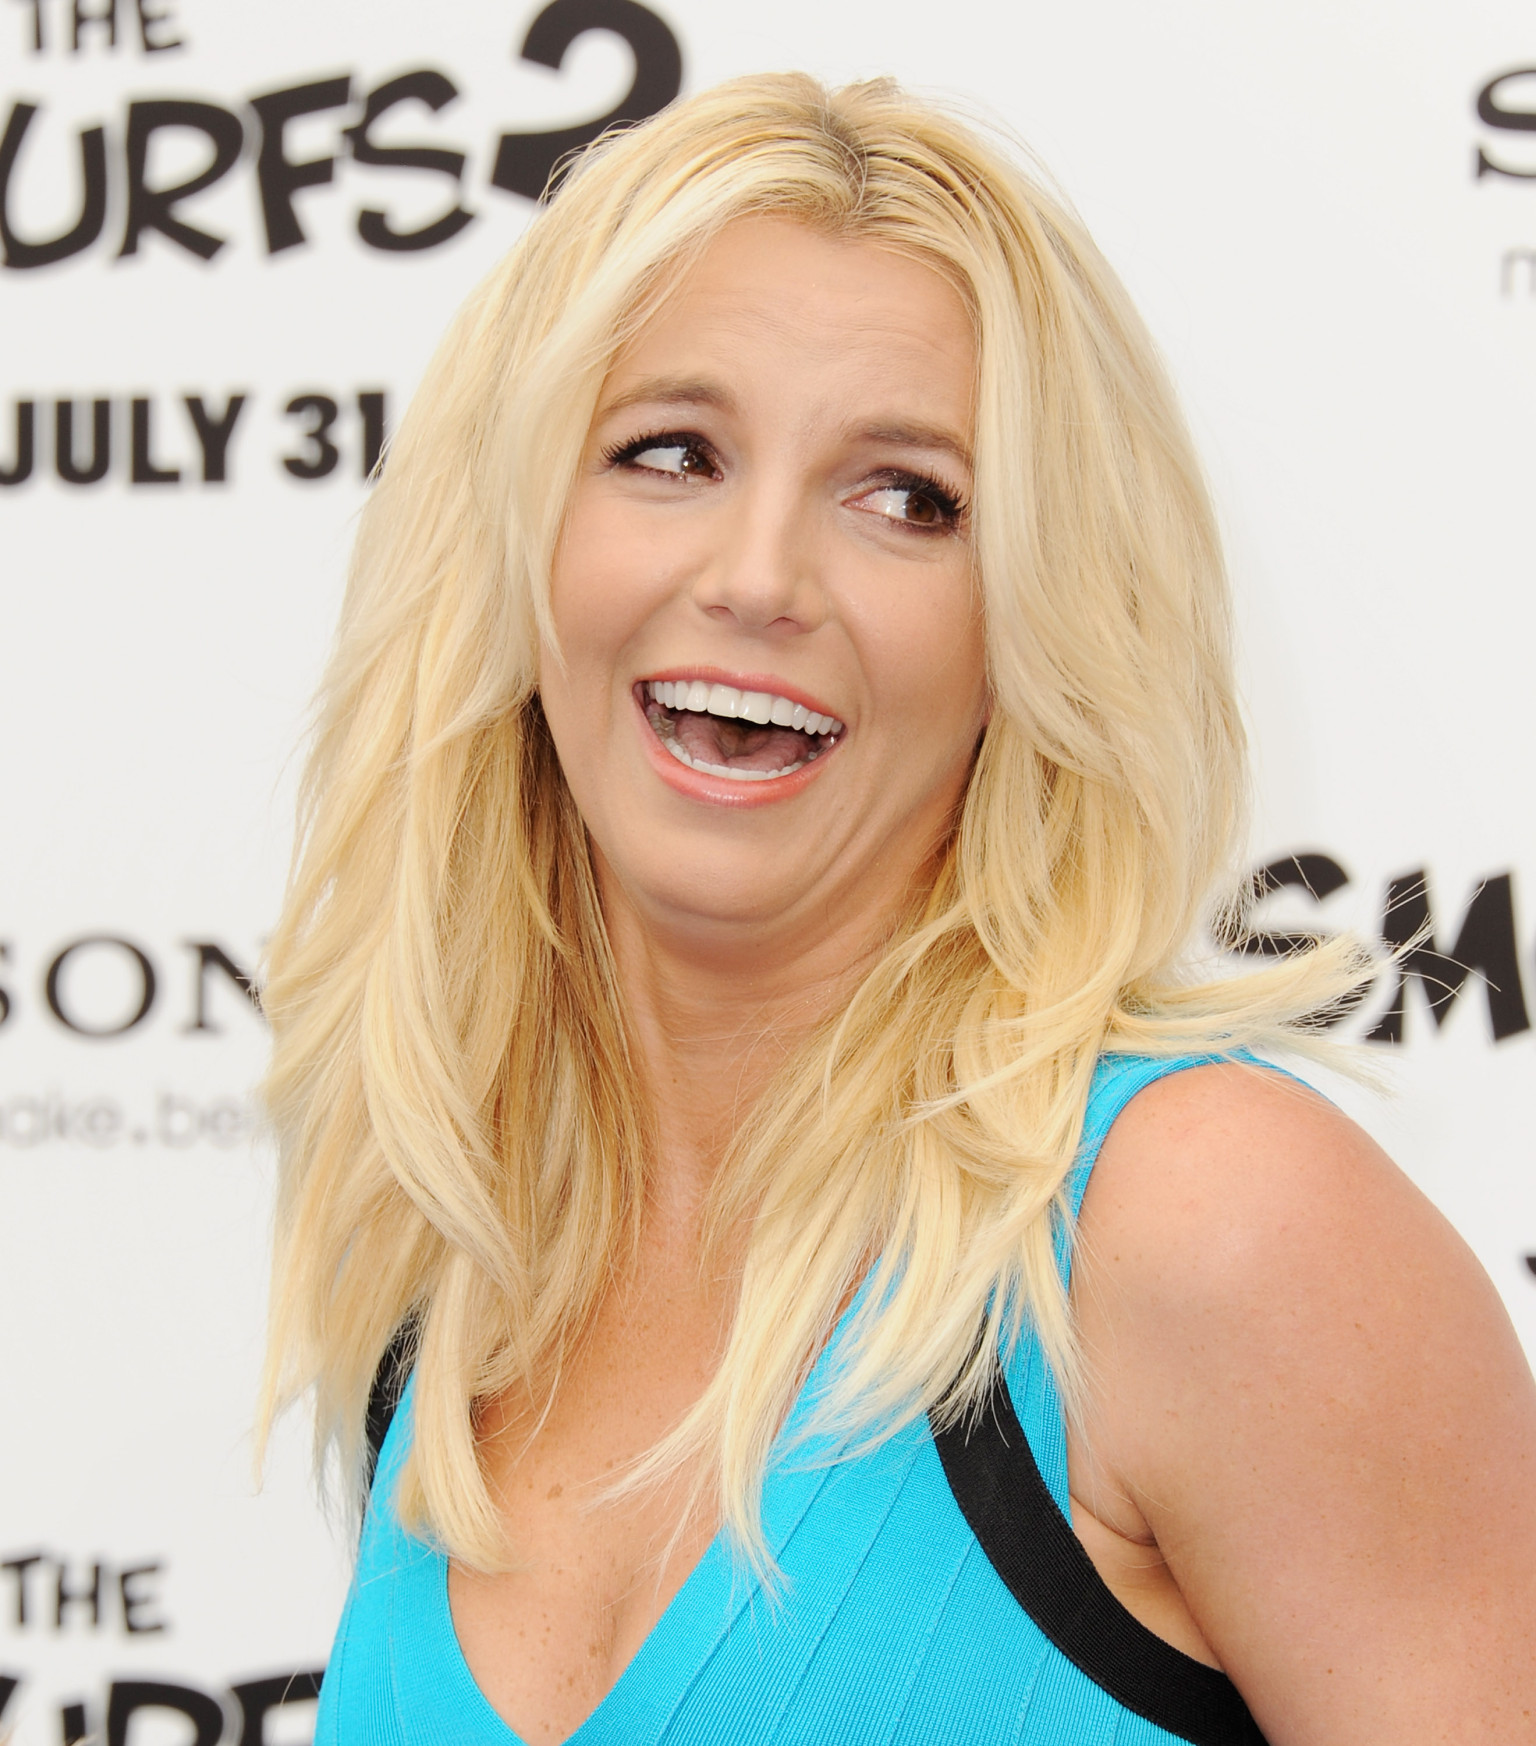 Britney Spears Funny Look 782.9 Kb